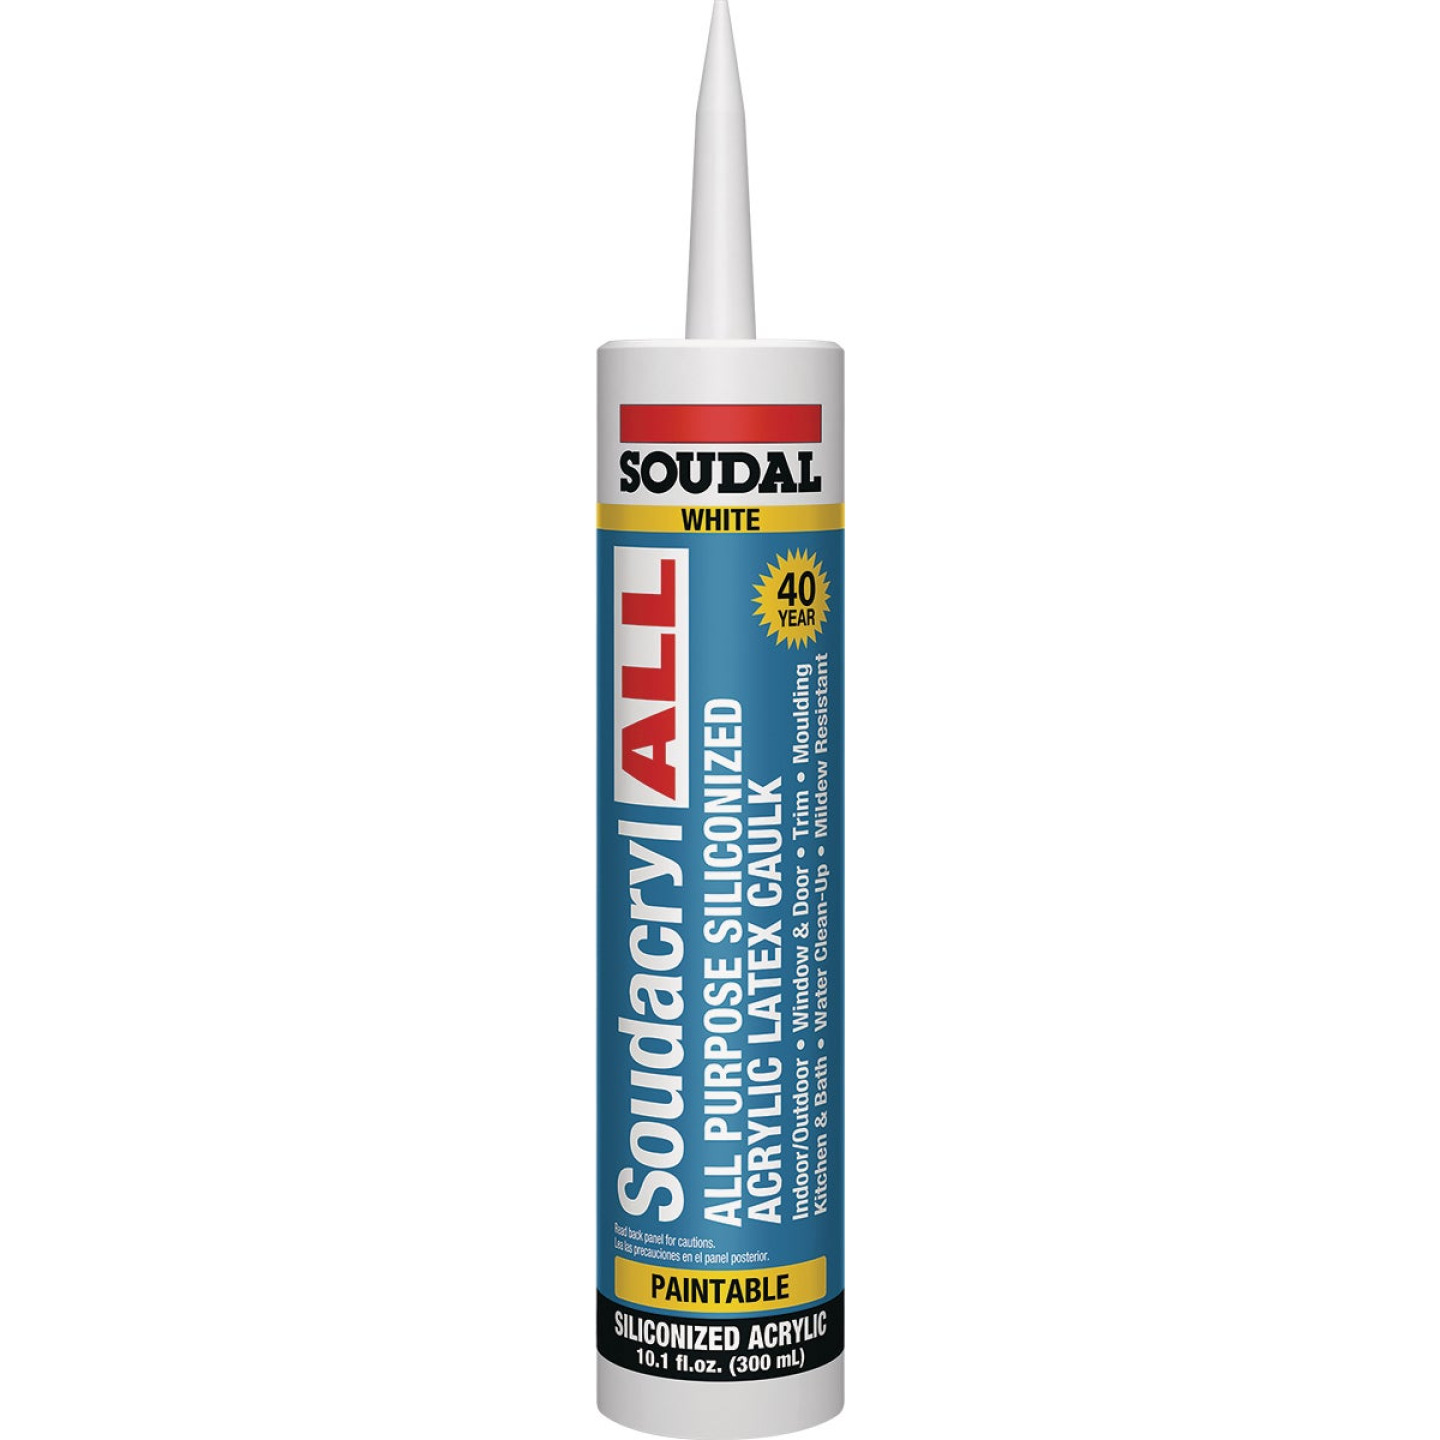 Soudacryl All 10.1 Oz. White Siliconized Acrylic Latex All-Purpose Caulk Image 1